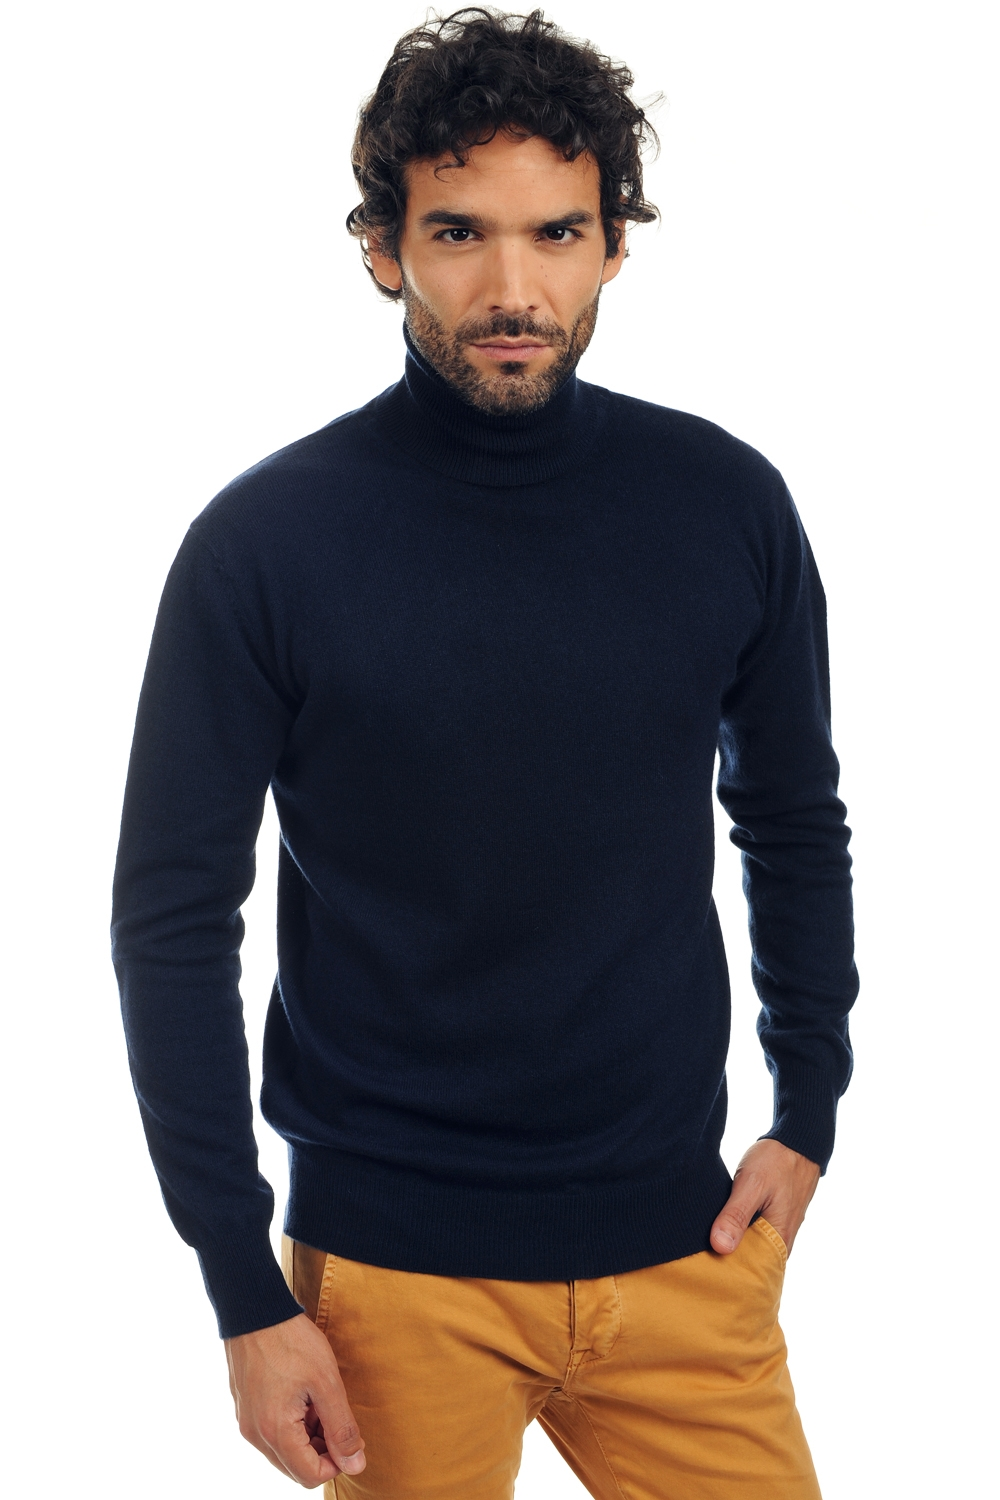 cachemire pull homme col roule preston marine fonce m